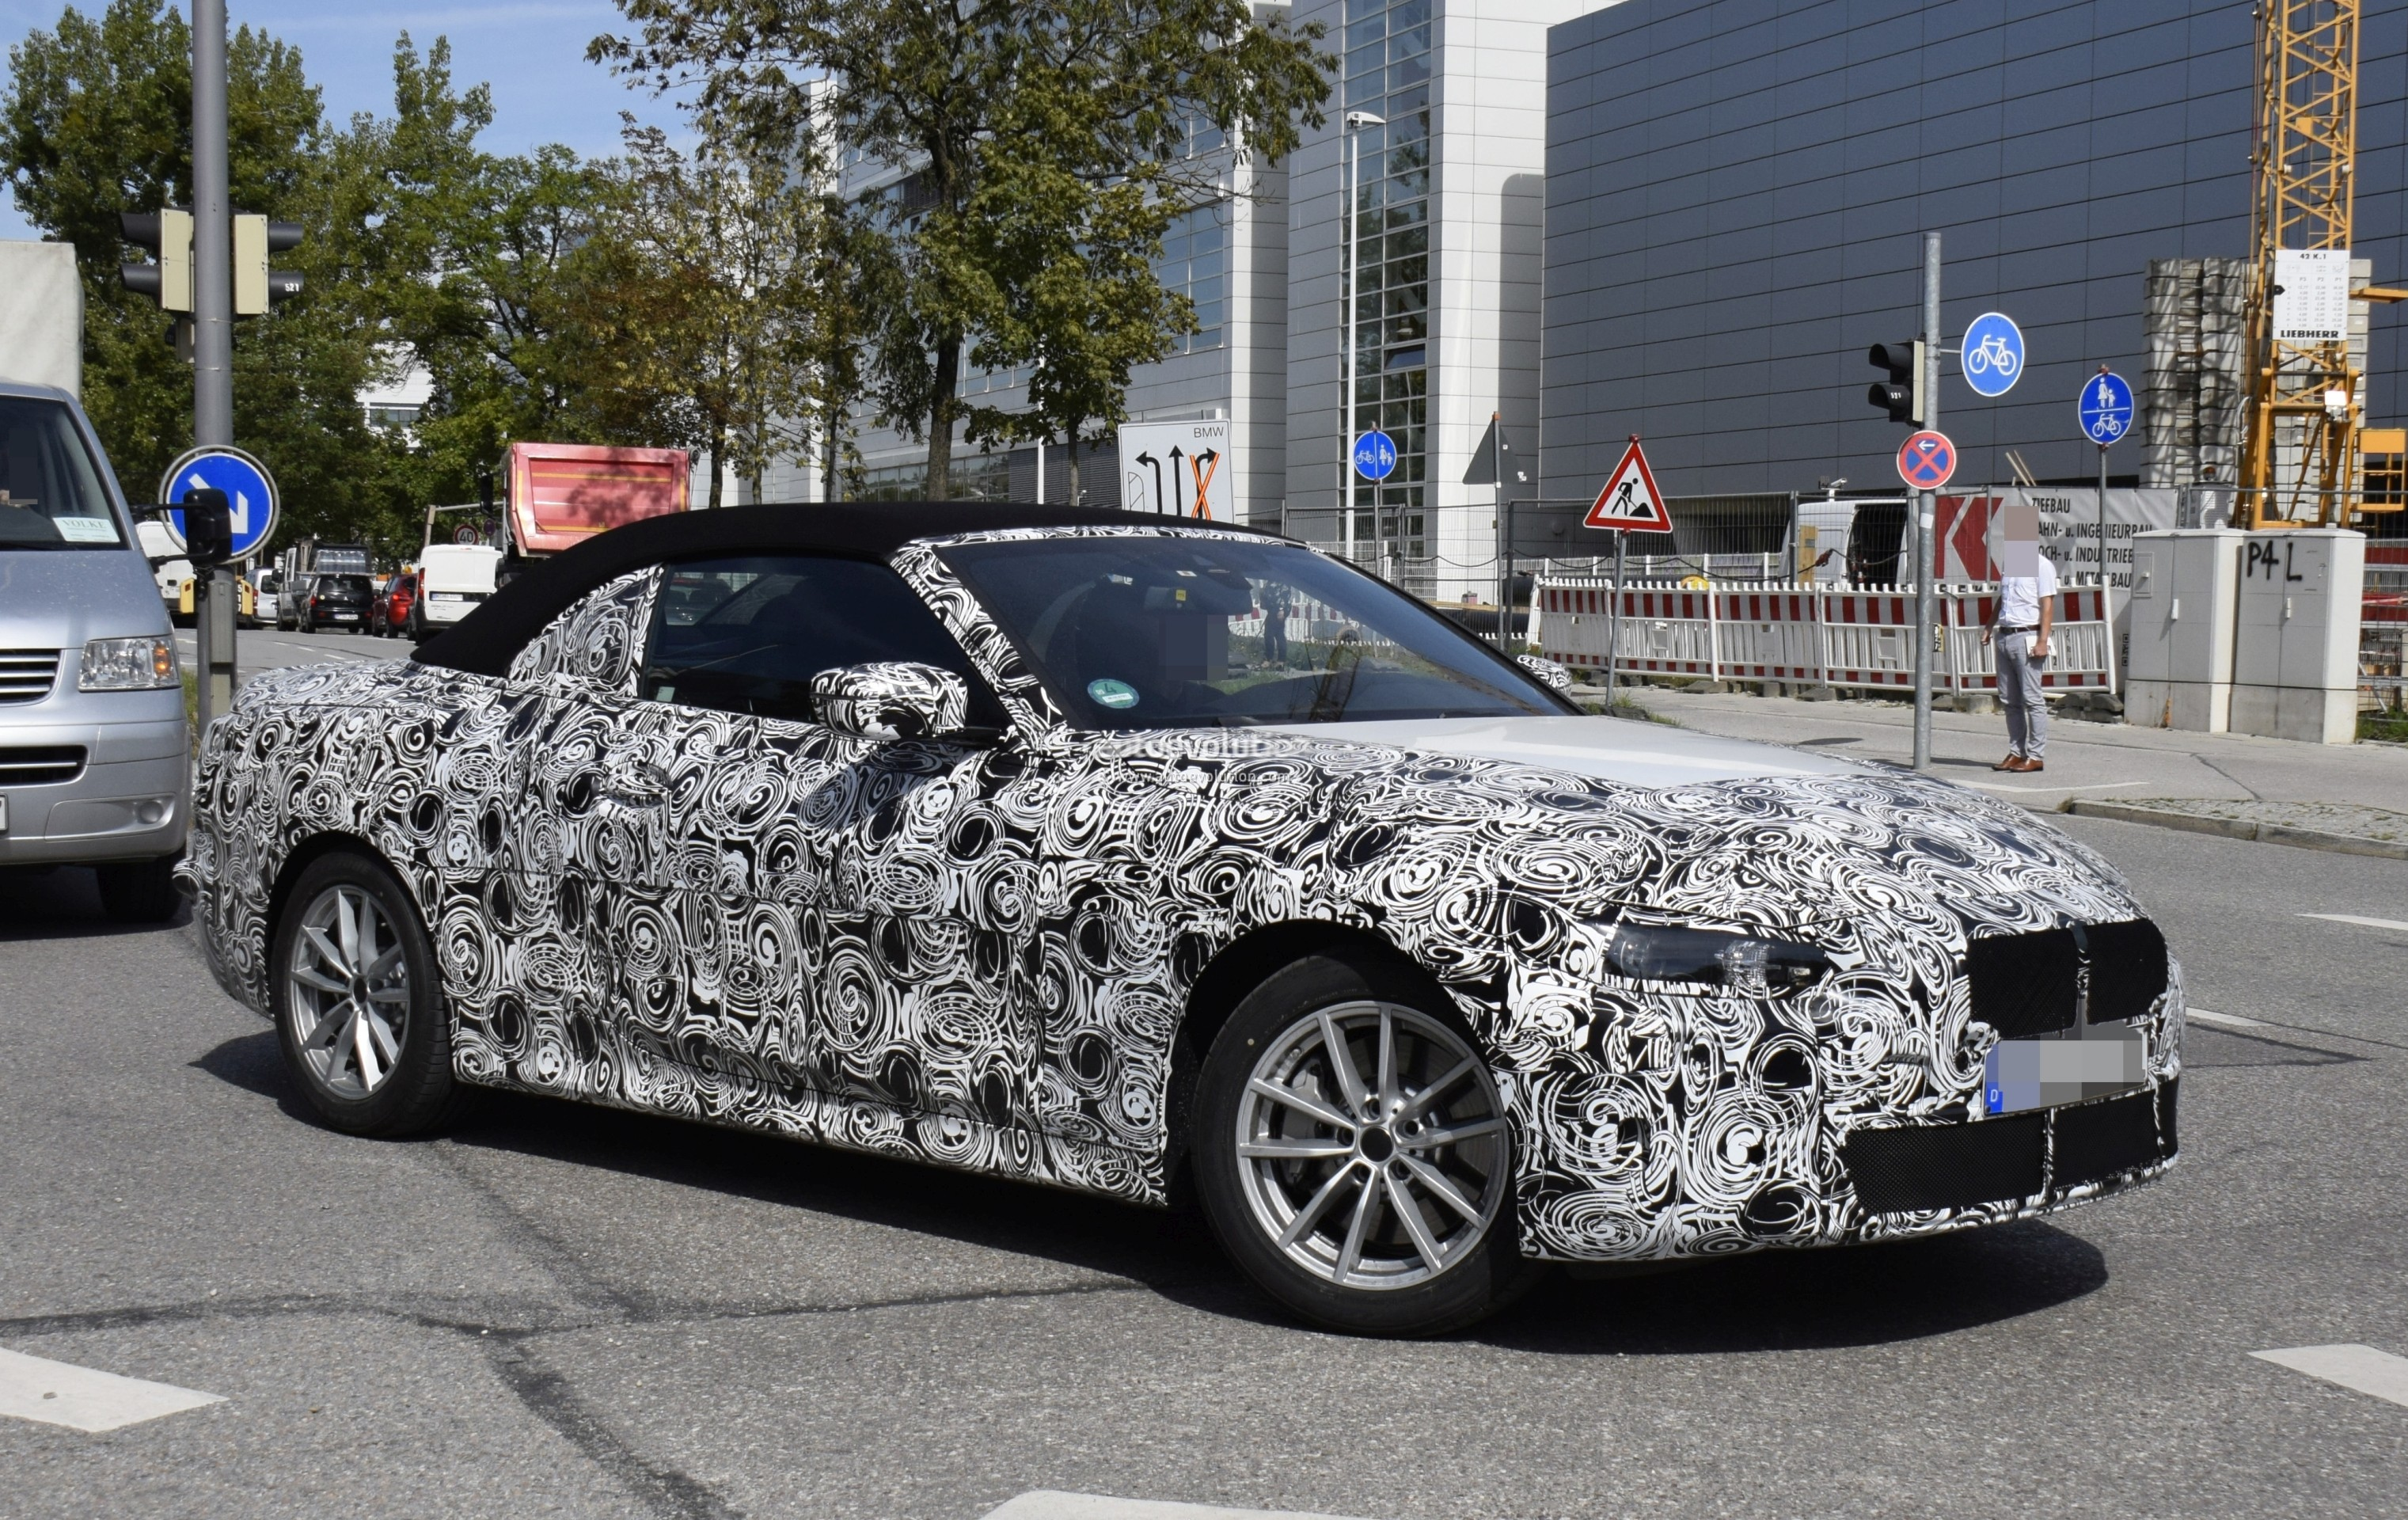 New Bmw 4 Series Convertible Spotted In Traffic Shows